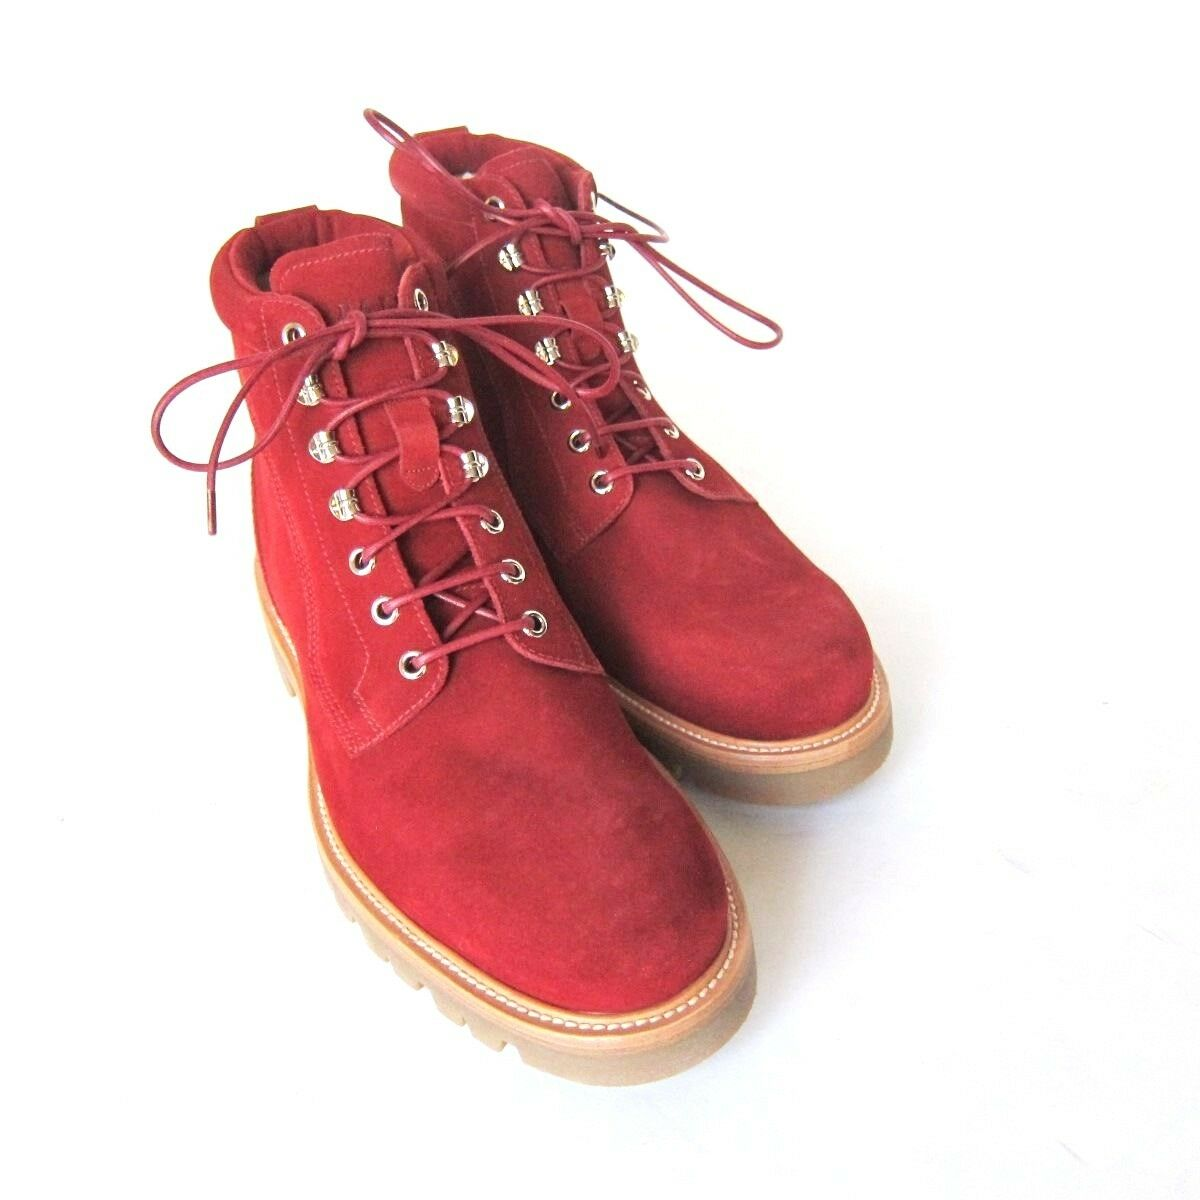 S-1475971 New Bally Wellys Bally Red Suede Boot Shoes Size   7D/marked 6E